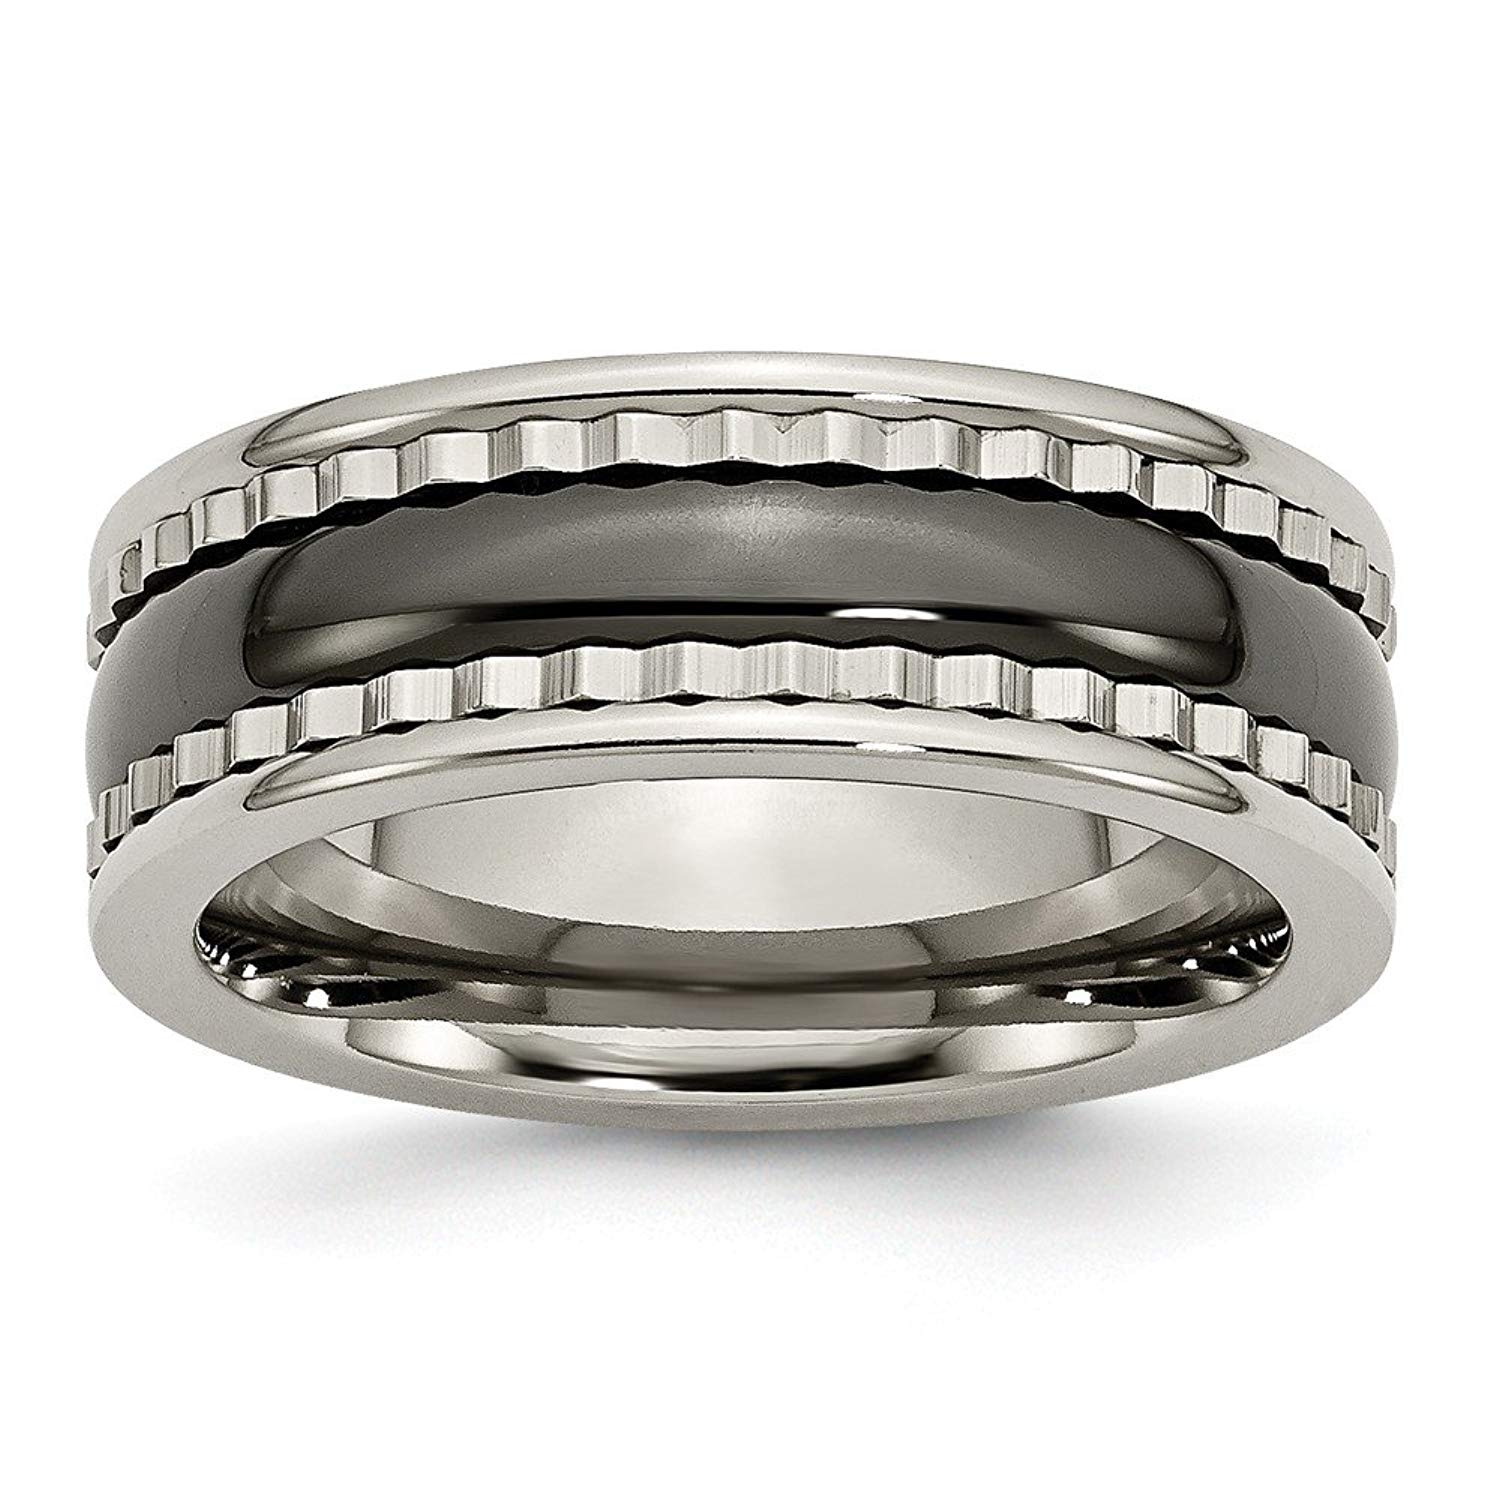 Top 10 Jewelry Gift Titanium w/Sawtooth Accent/Polished Black Ceramic Center 8mm Band